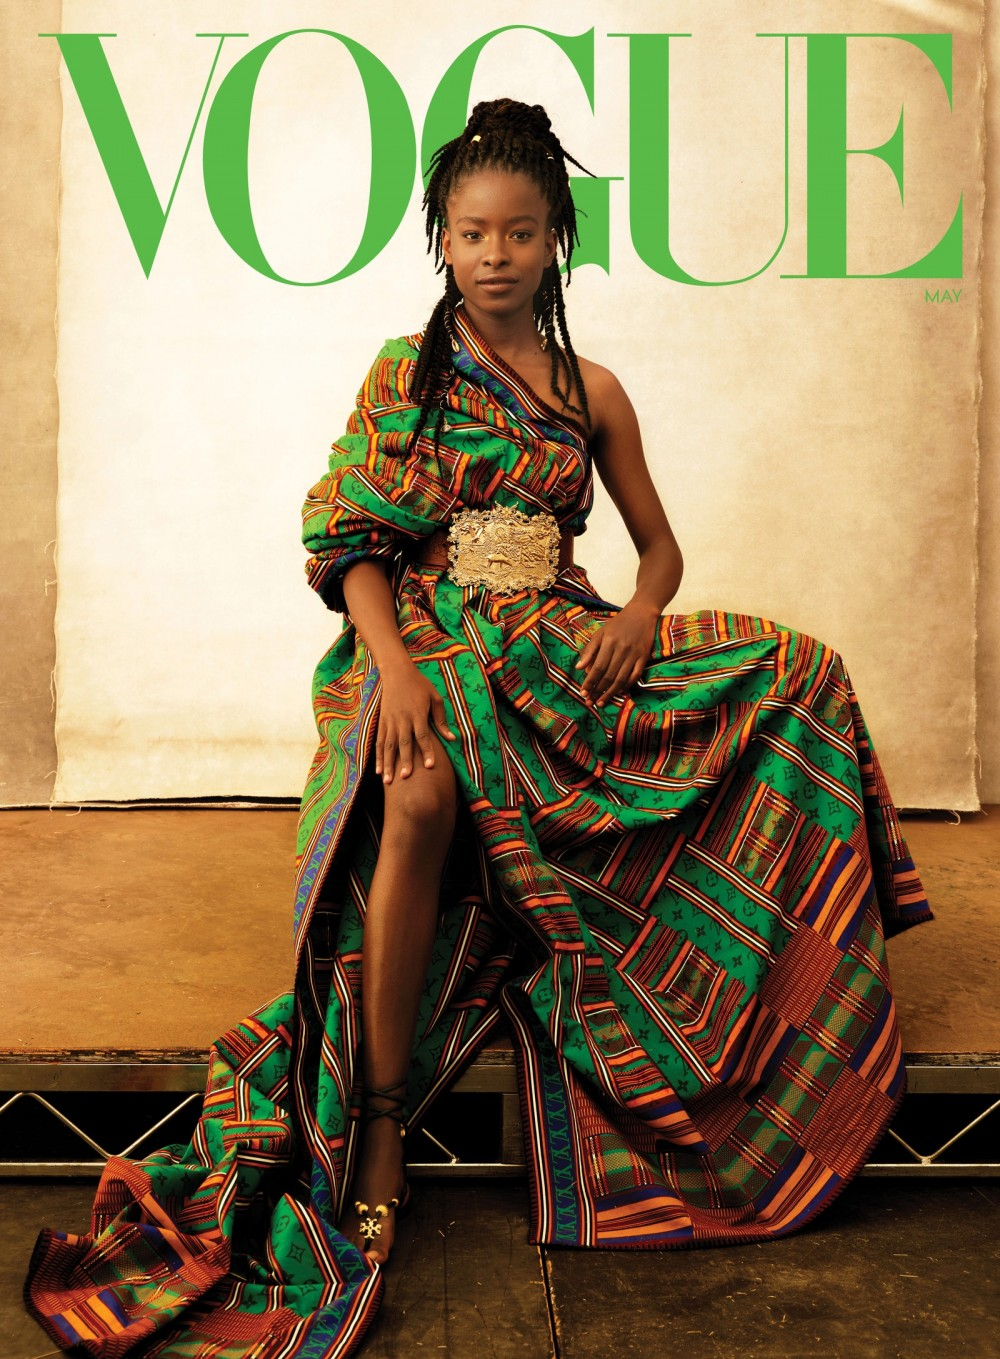 Cover Look With her new prominence Gorman says that her hope is to be a steppingstone for change. Louis Vuitton blanket...